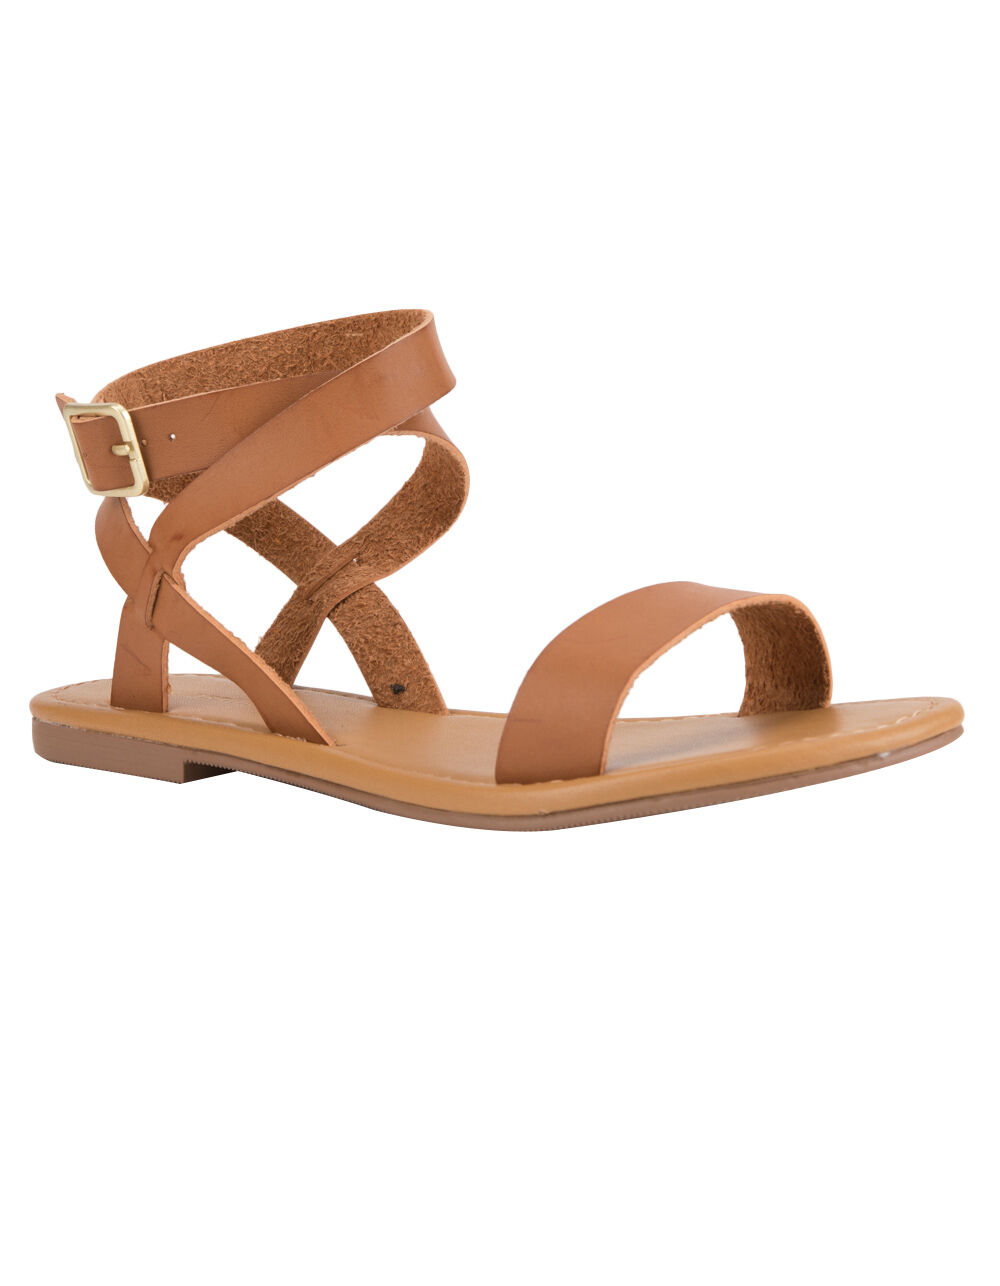 Image of CITY CLASSIFIED BASIC ANKLE WRAP SANDALS